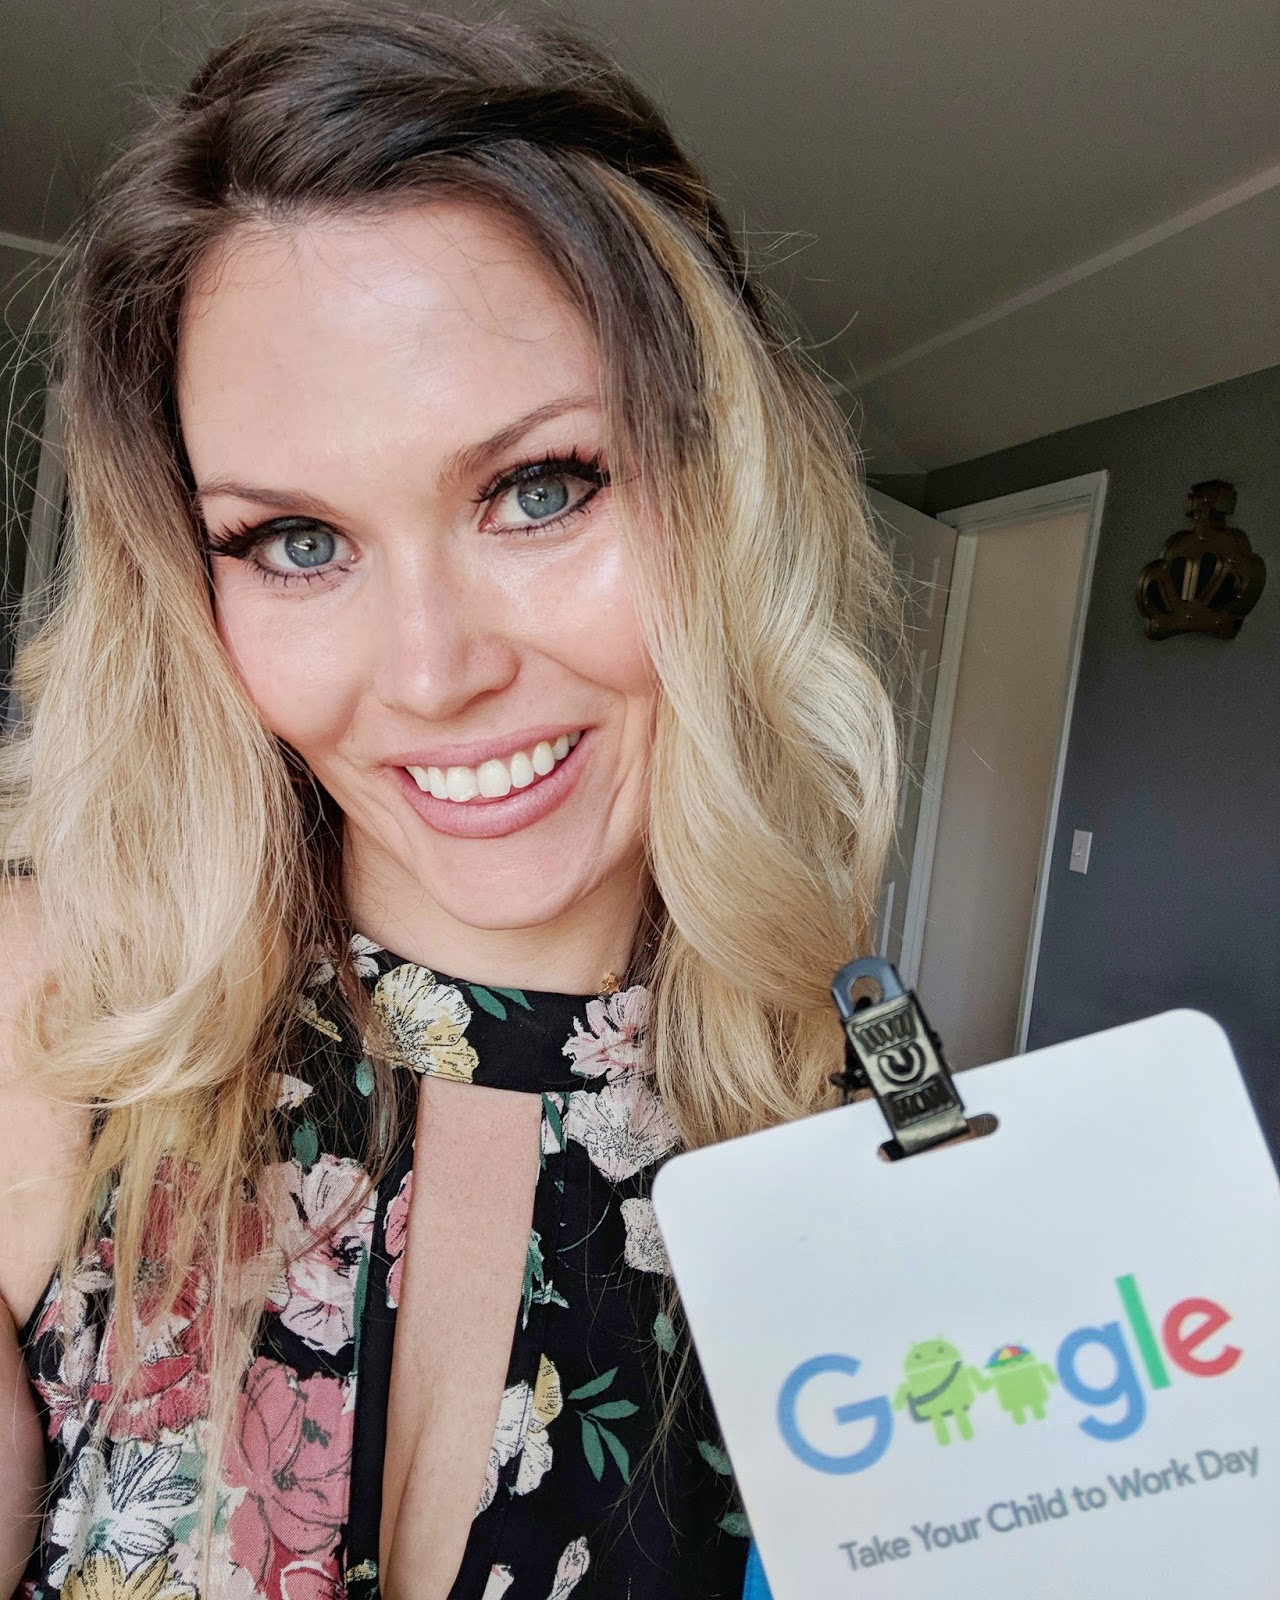 Take Your Child To Work Day 2018 blogger google